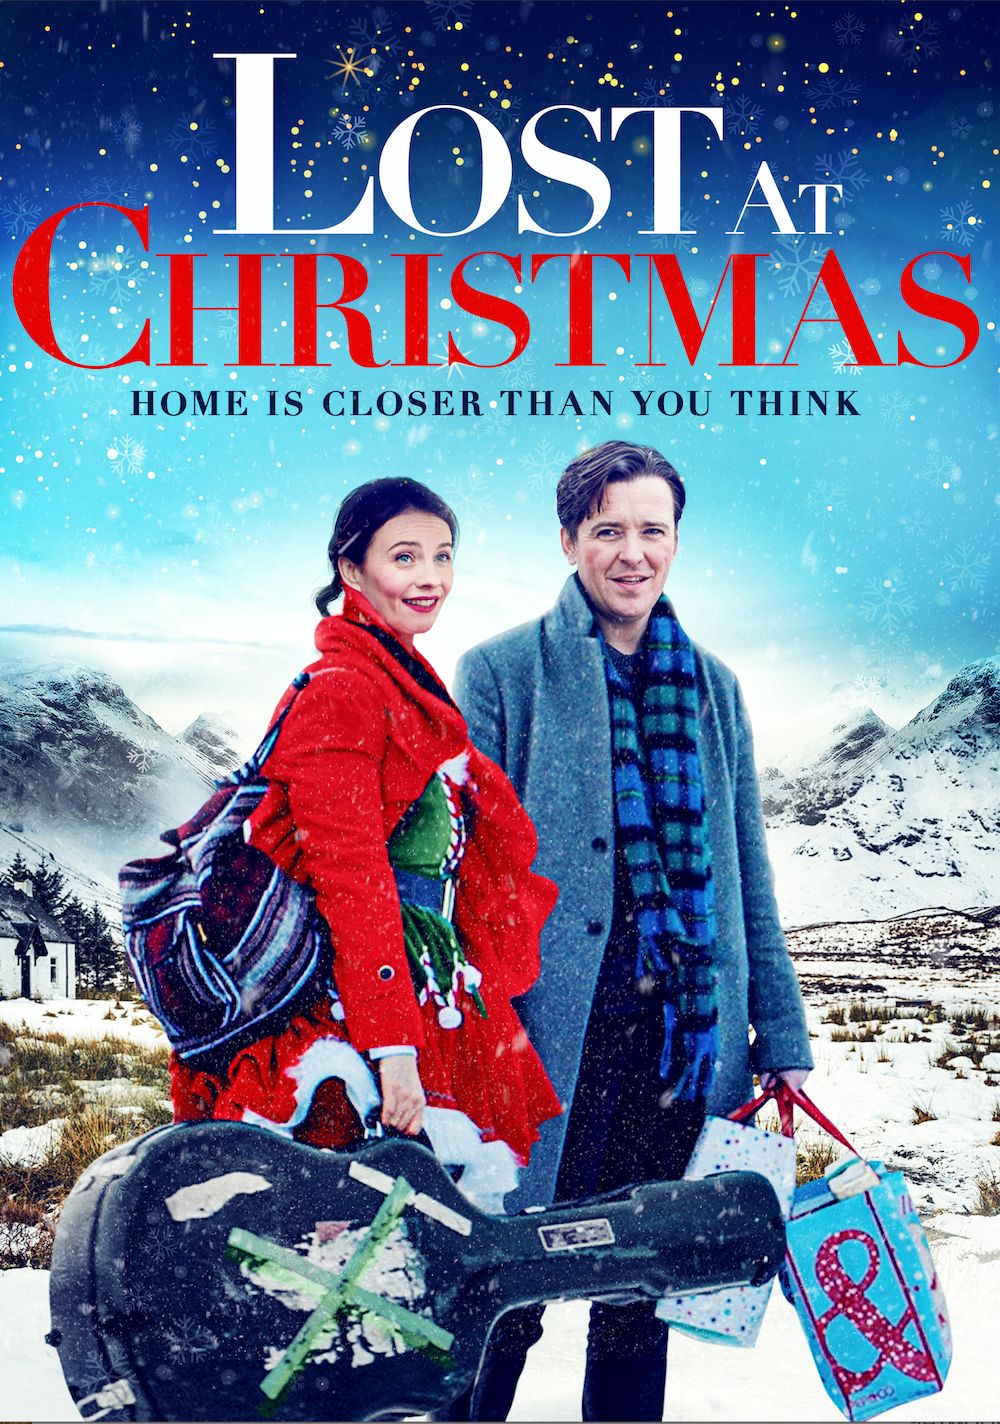 Lost at Christmas movie poster featuring a white man and a white woman. The woman wears a read jacket and carries a guitar case. The main has a blue coat and carries shopping bags.